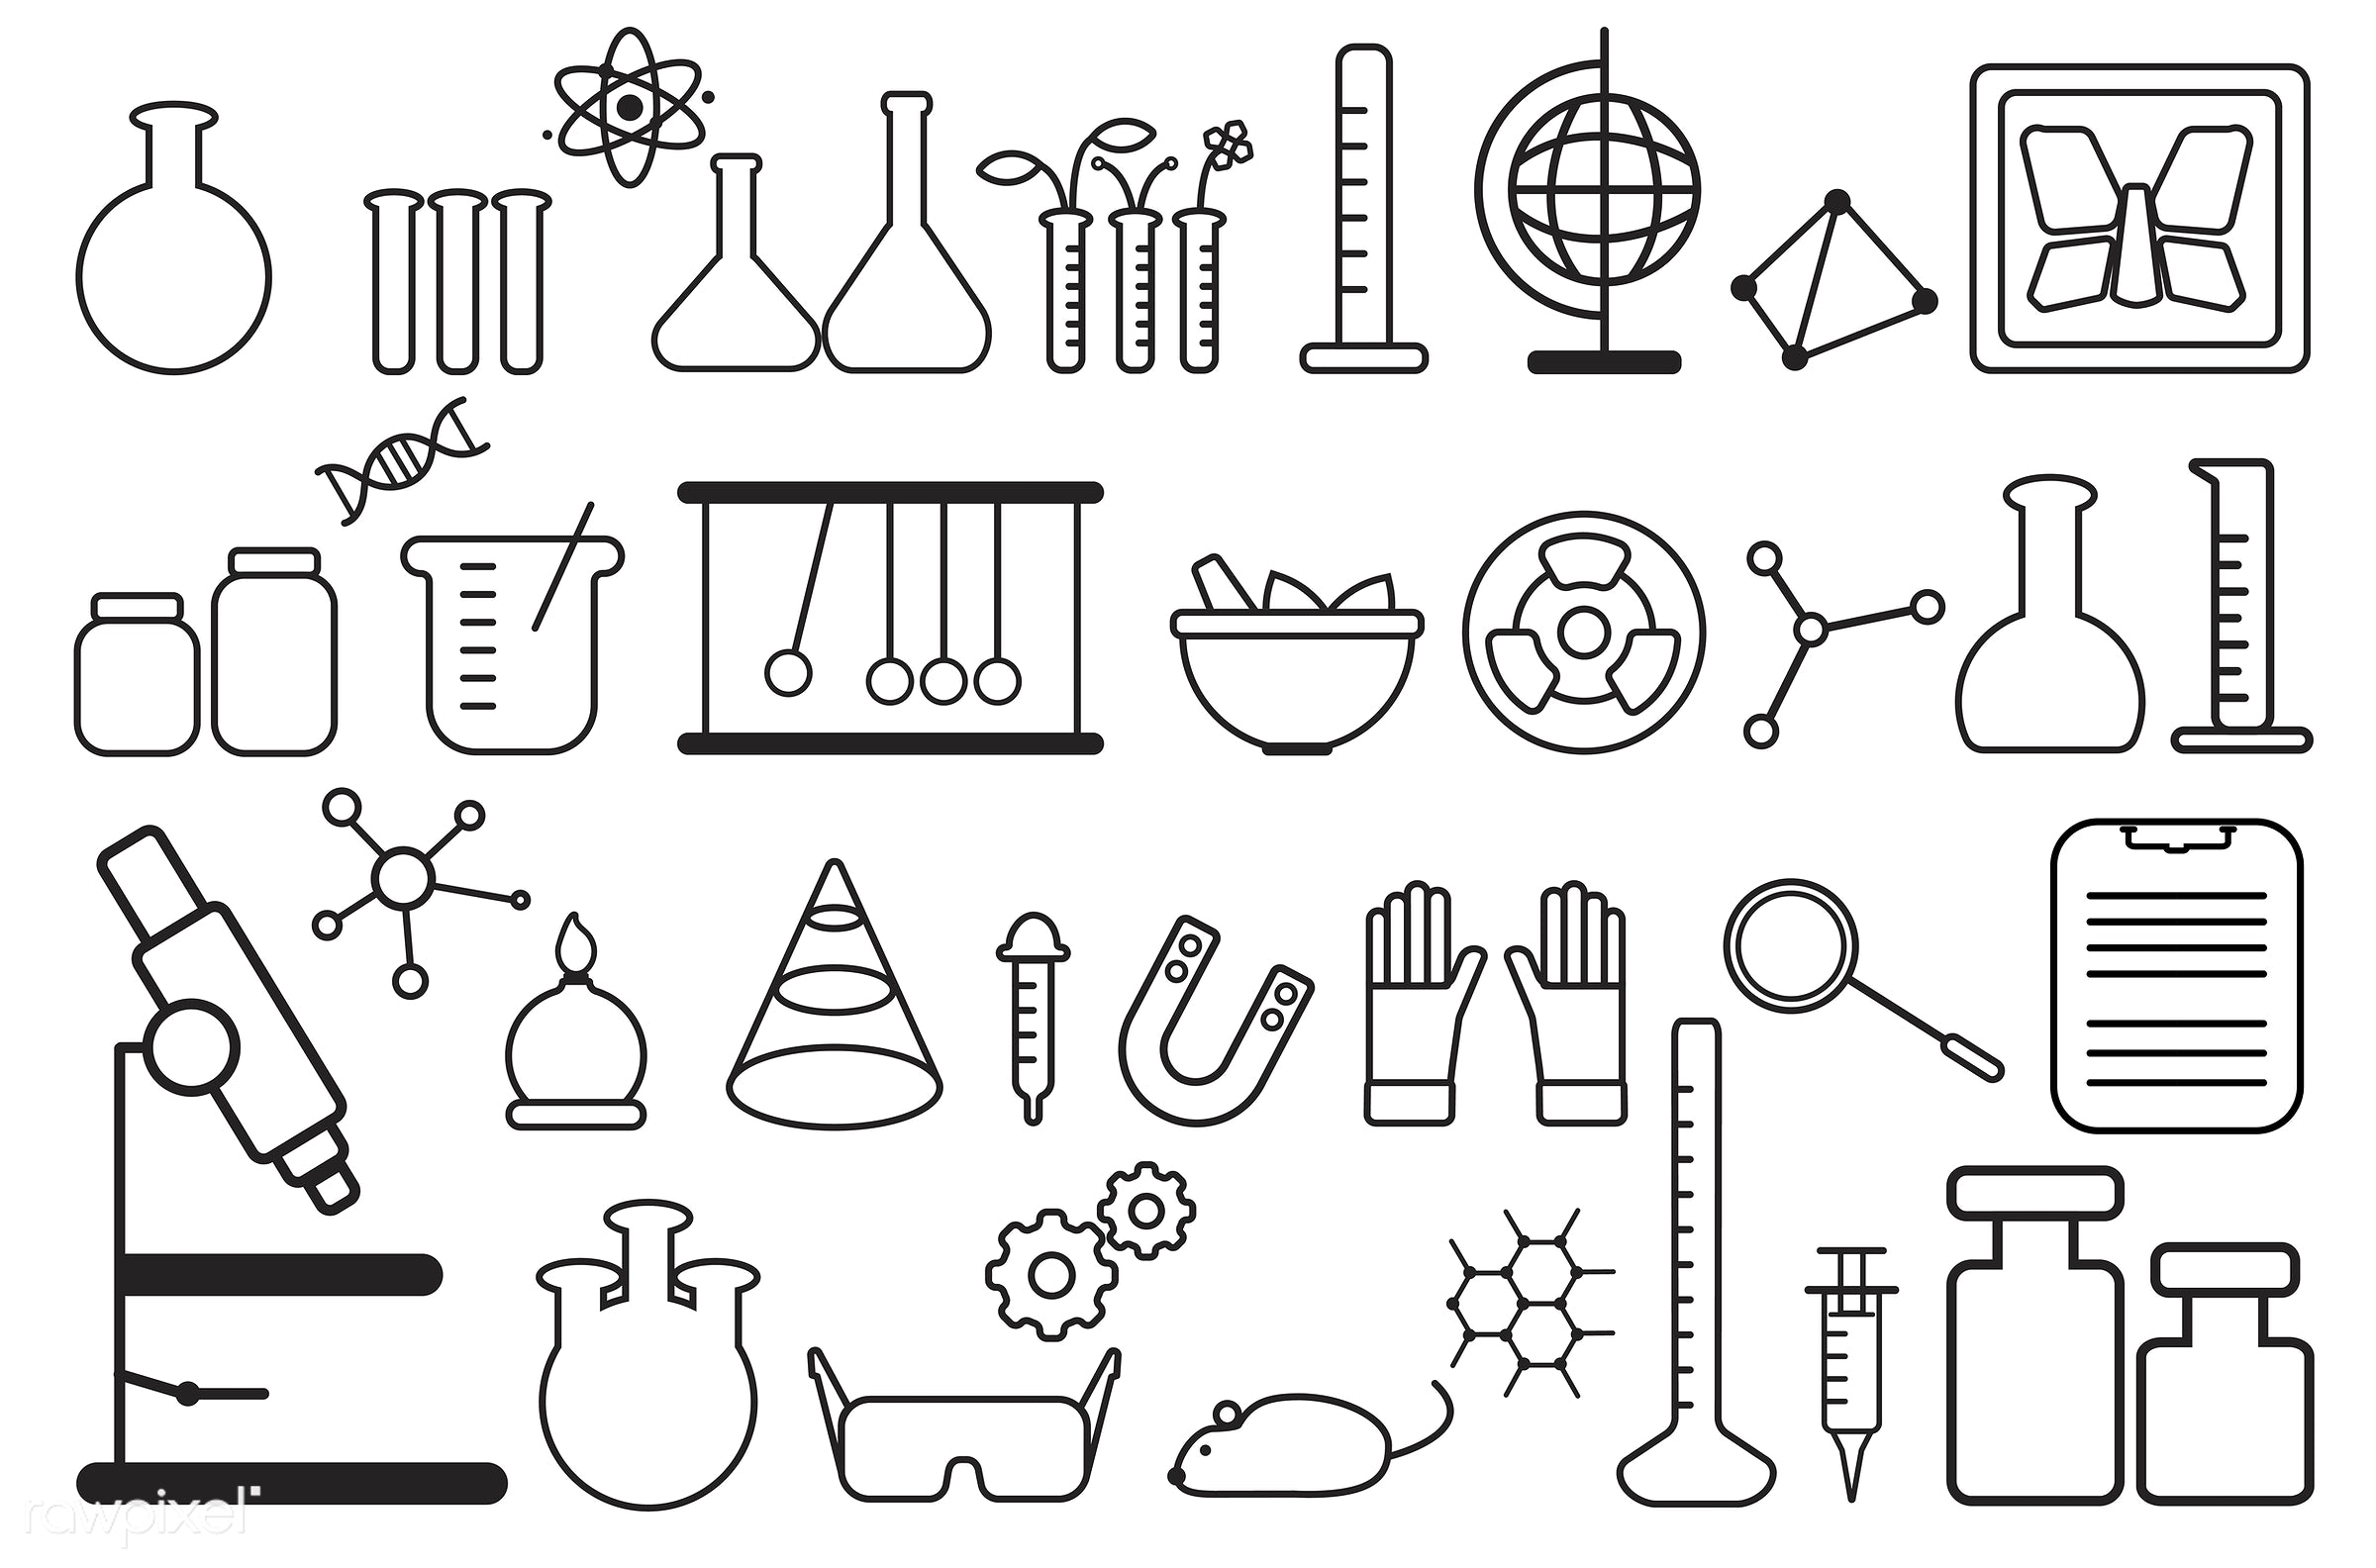 biology, chemistry, class, collage, collection, design, education, equipment, experiments, graphic, icon, illustration,...